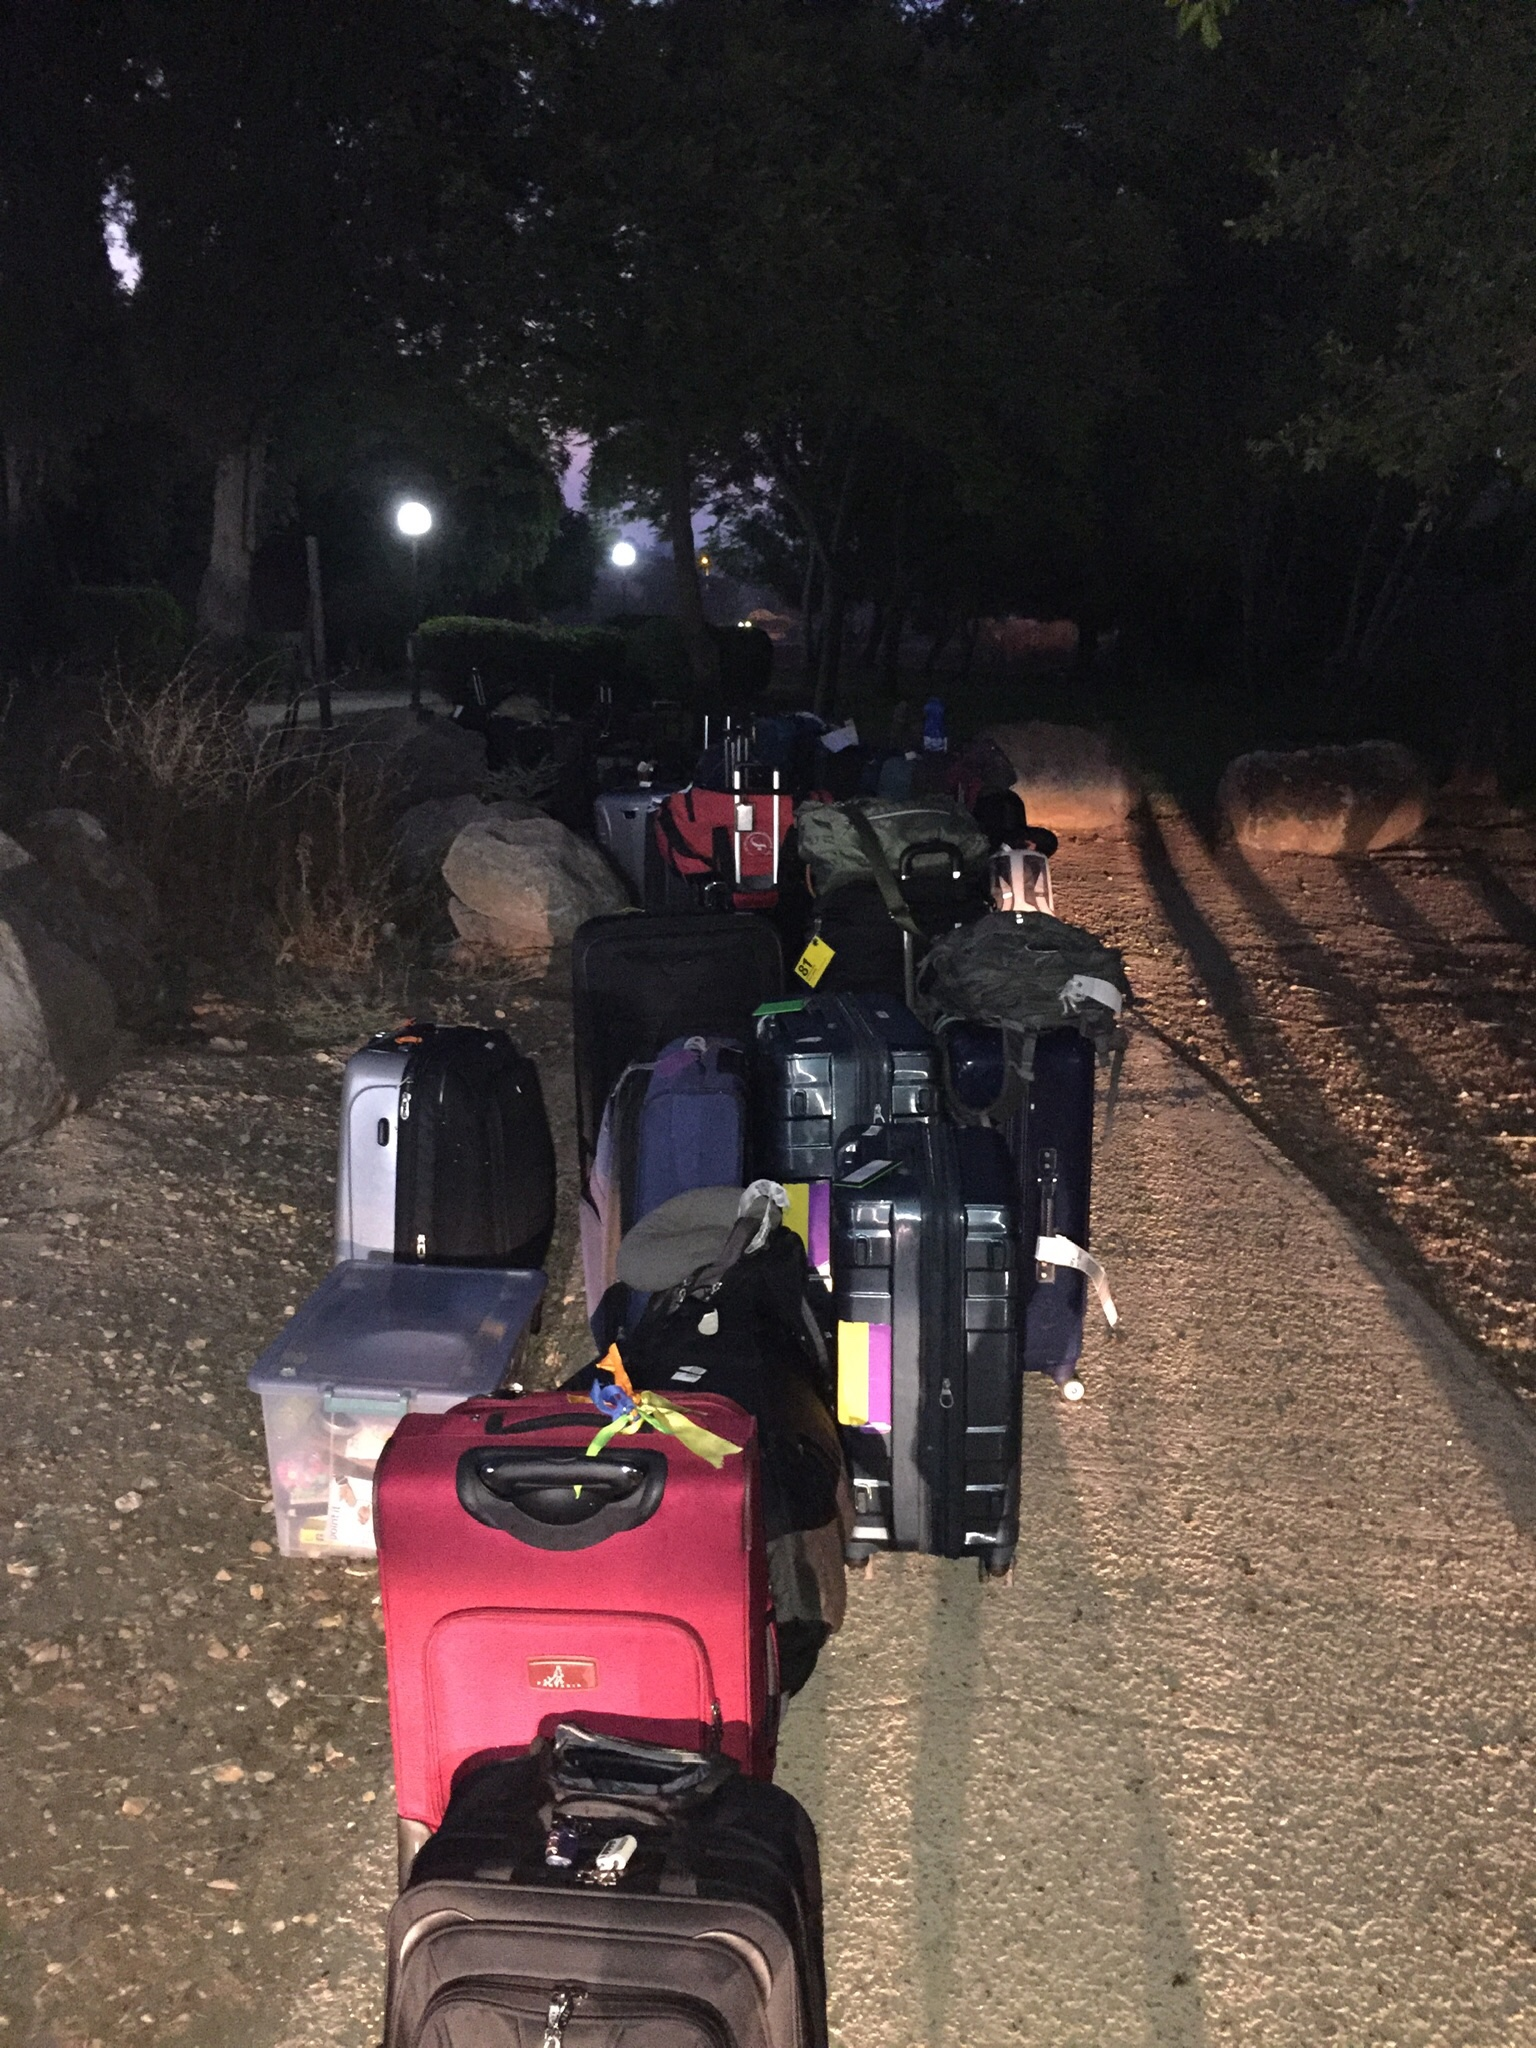 Luggage lined up and ready for the early morning move.